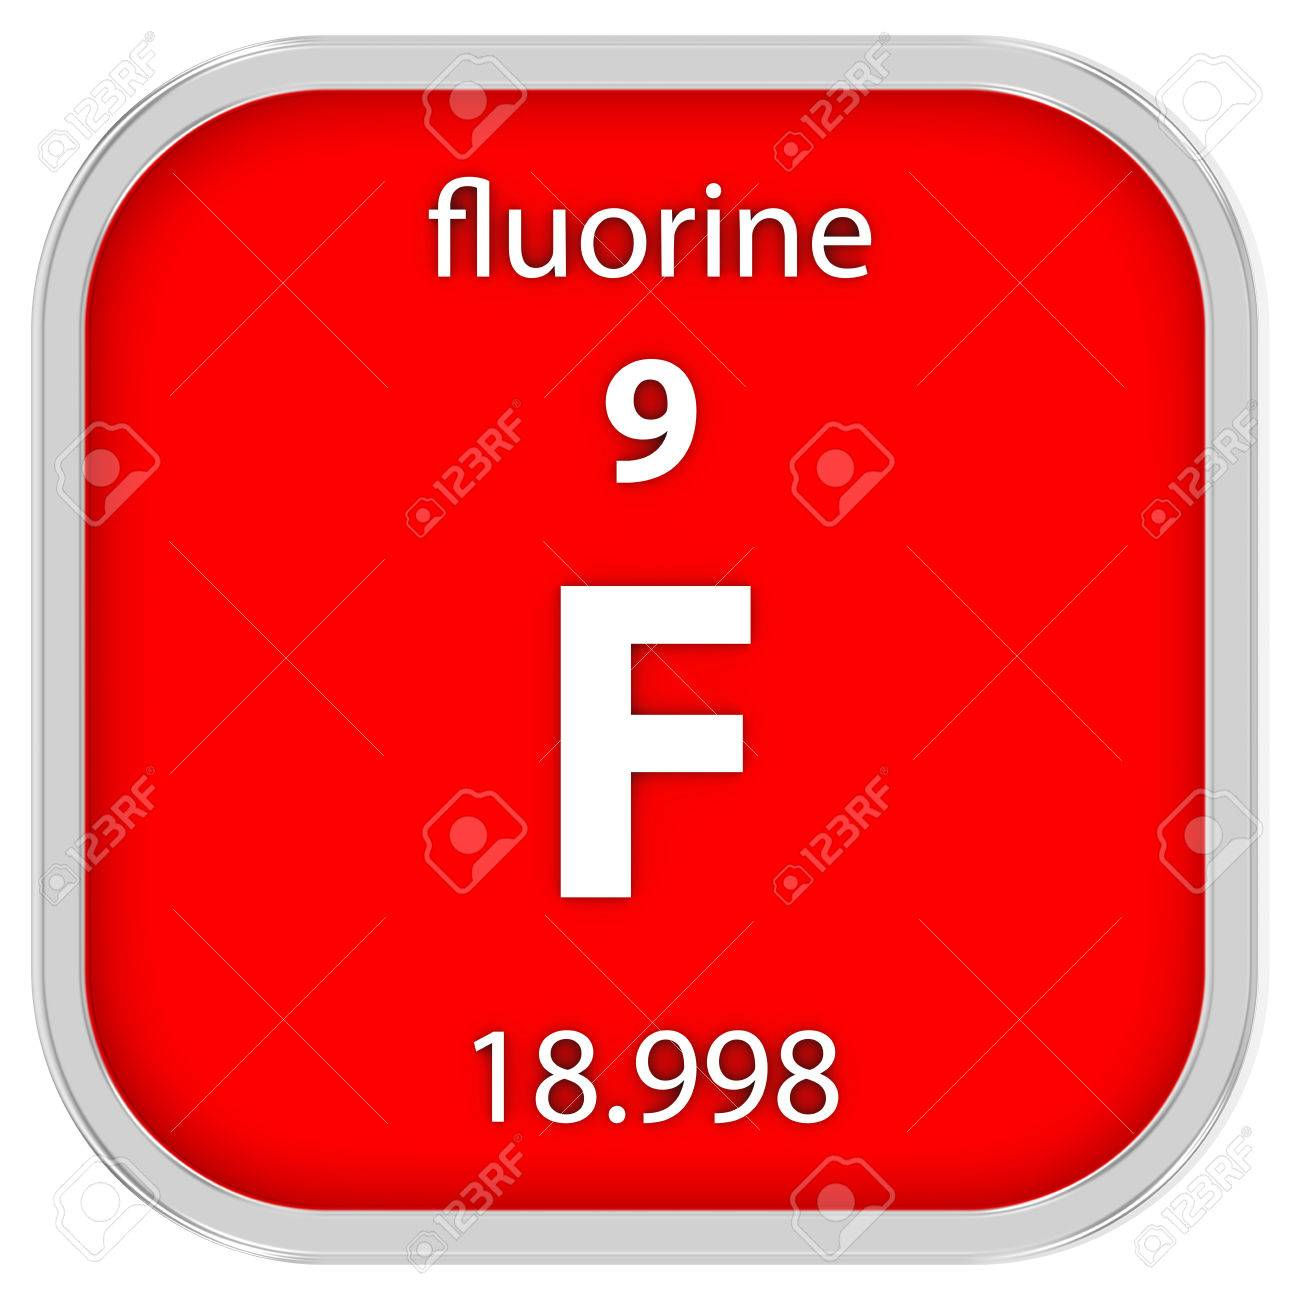 Fluorine on periodic table gallery periodic table images what is the symbol for fluorine on the periodic table choice image fluorine material on the gamestrikefo Gallery